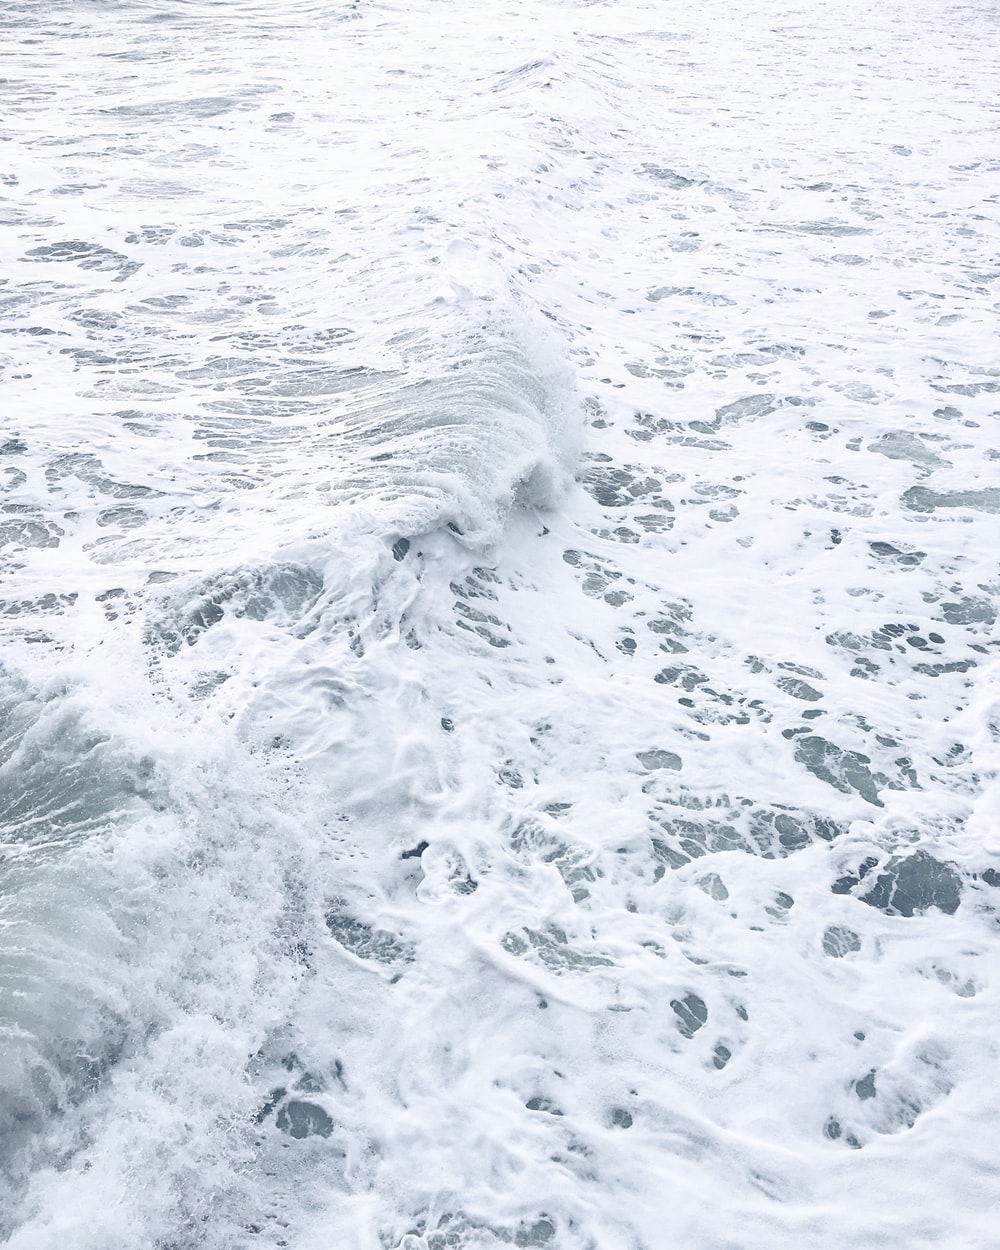 ocean with wave